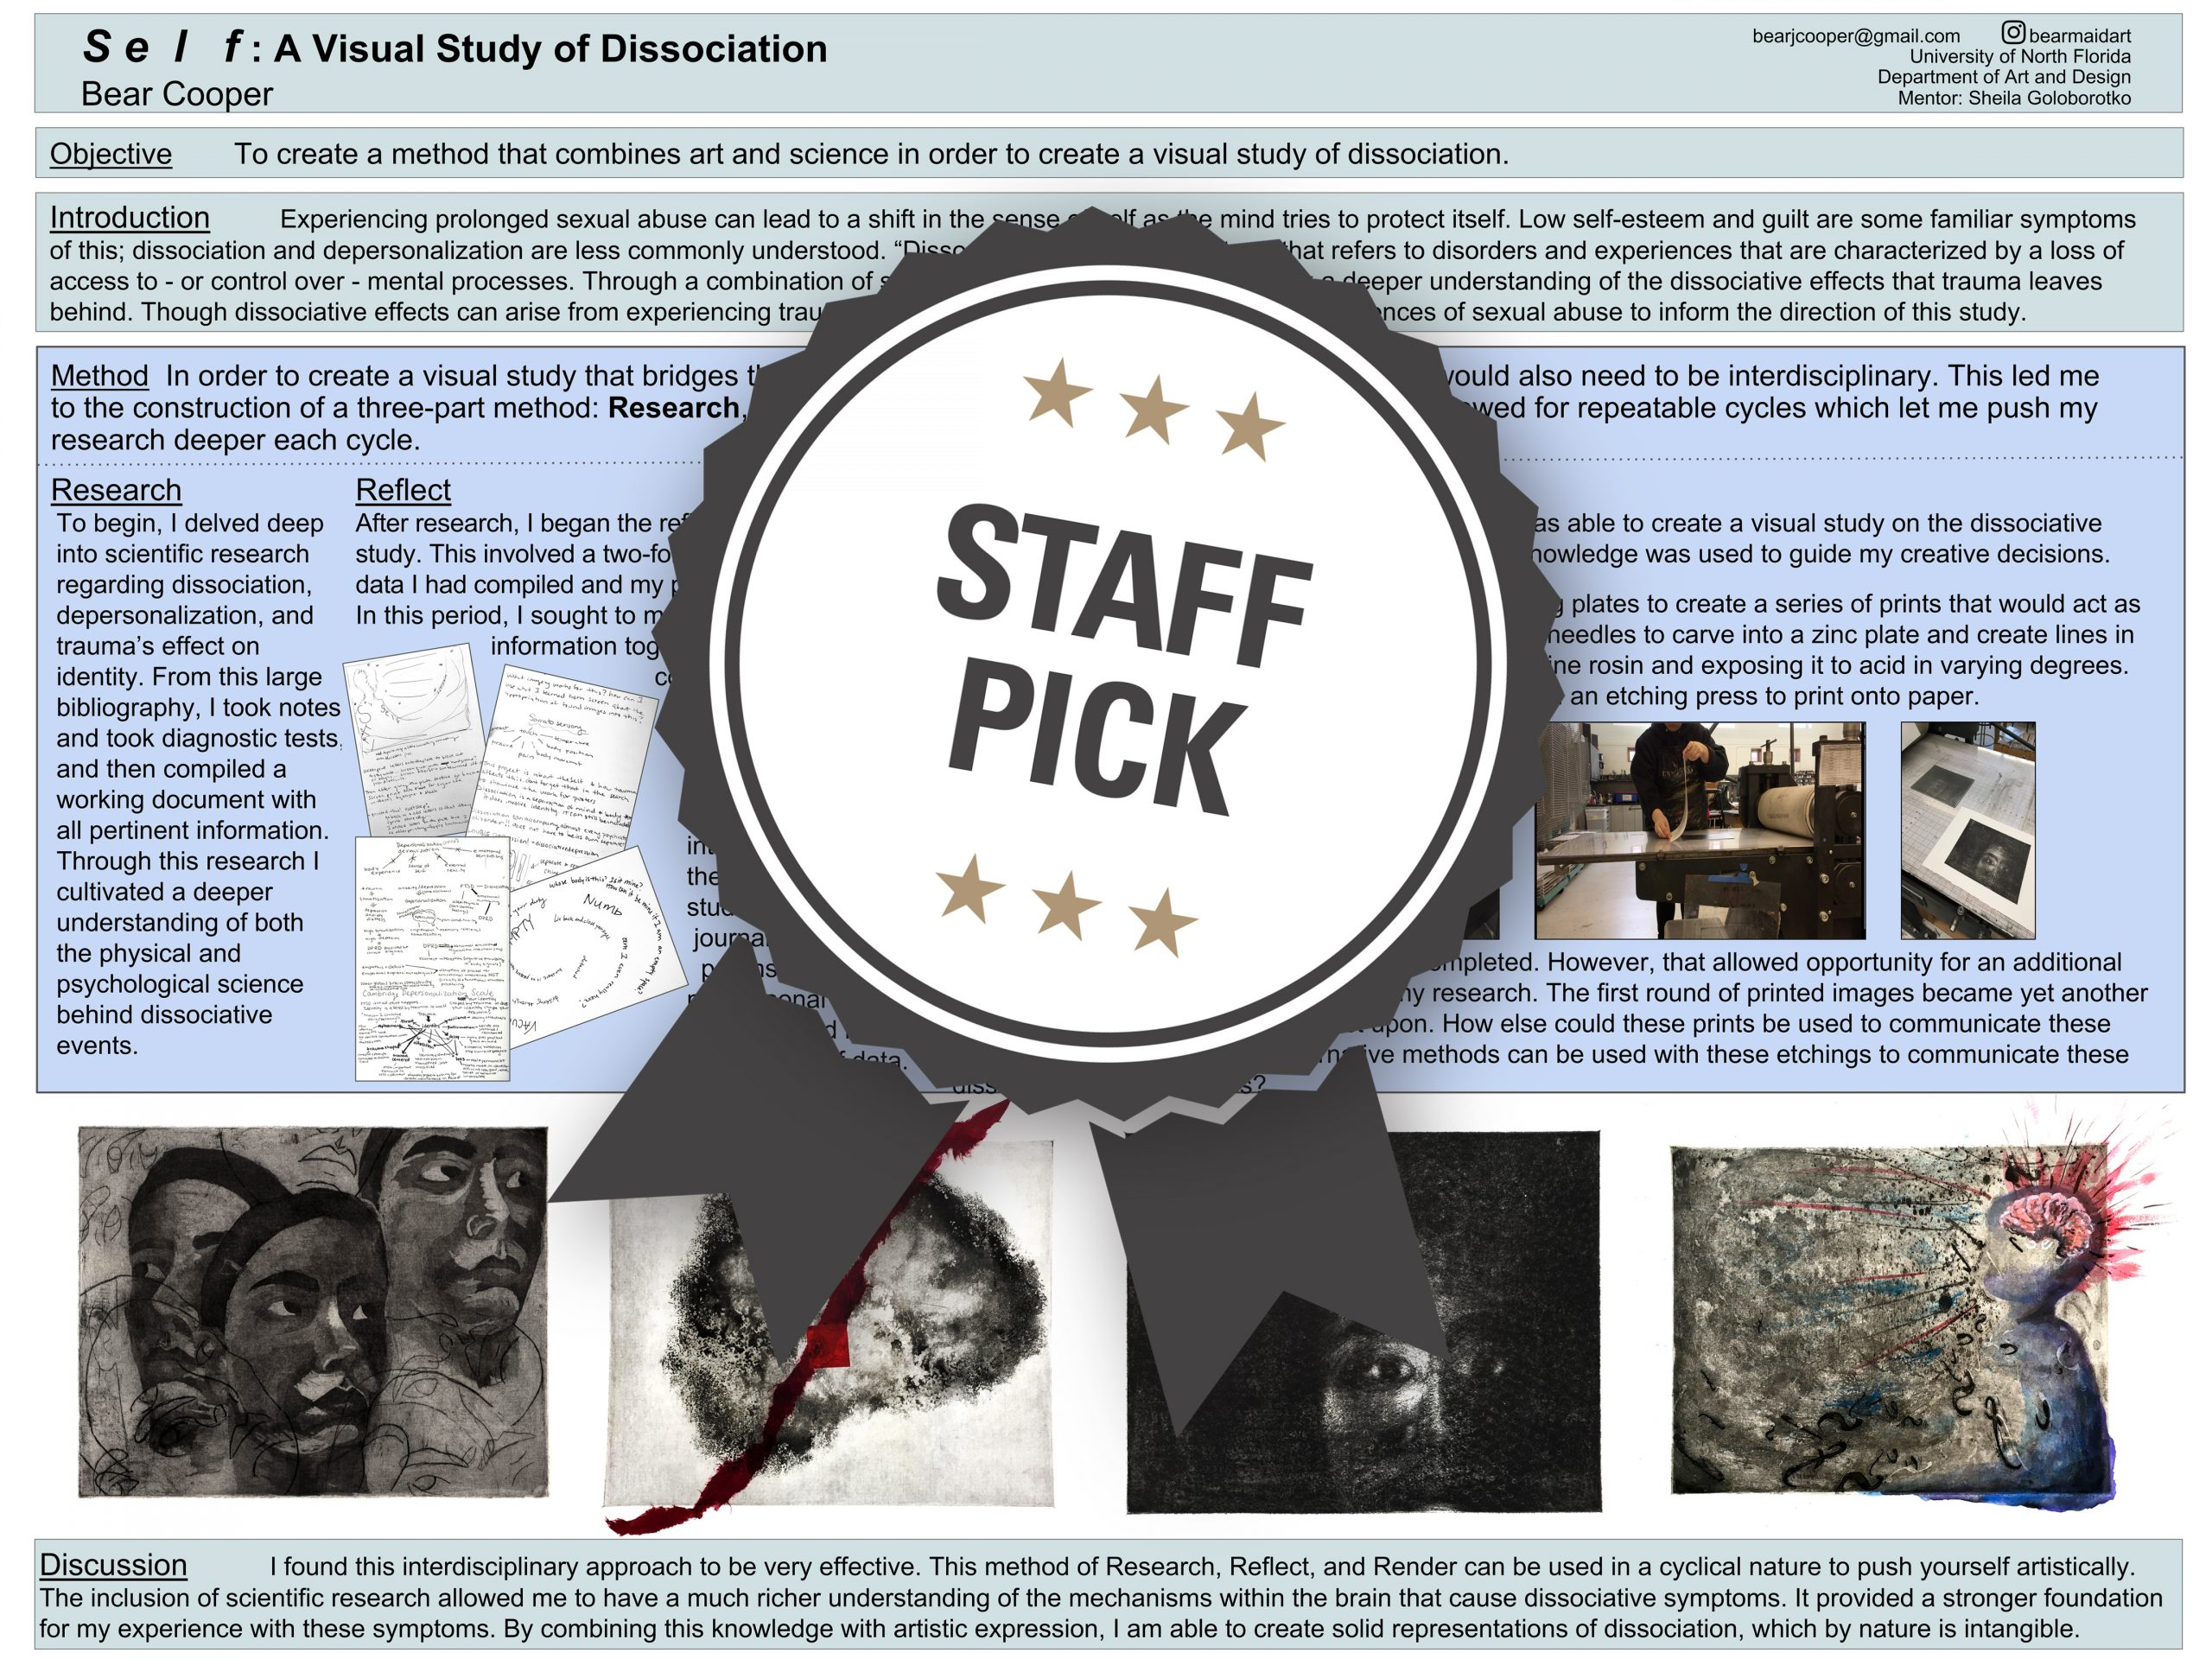 Self: A Visual Study of Dissociation Staff Pick poster